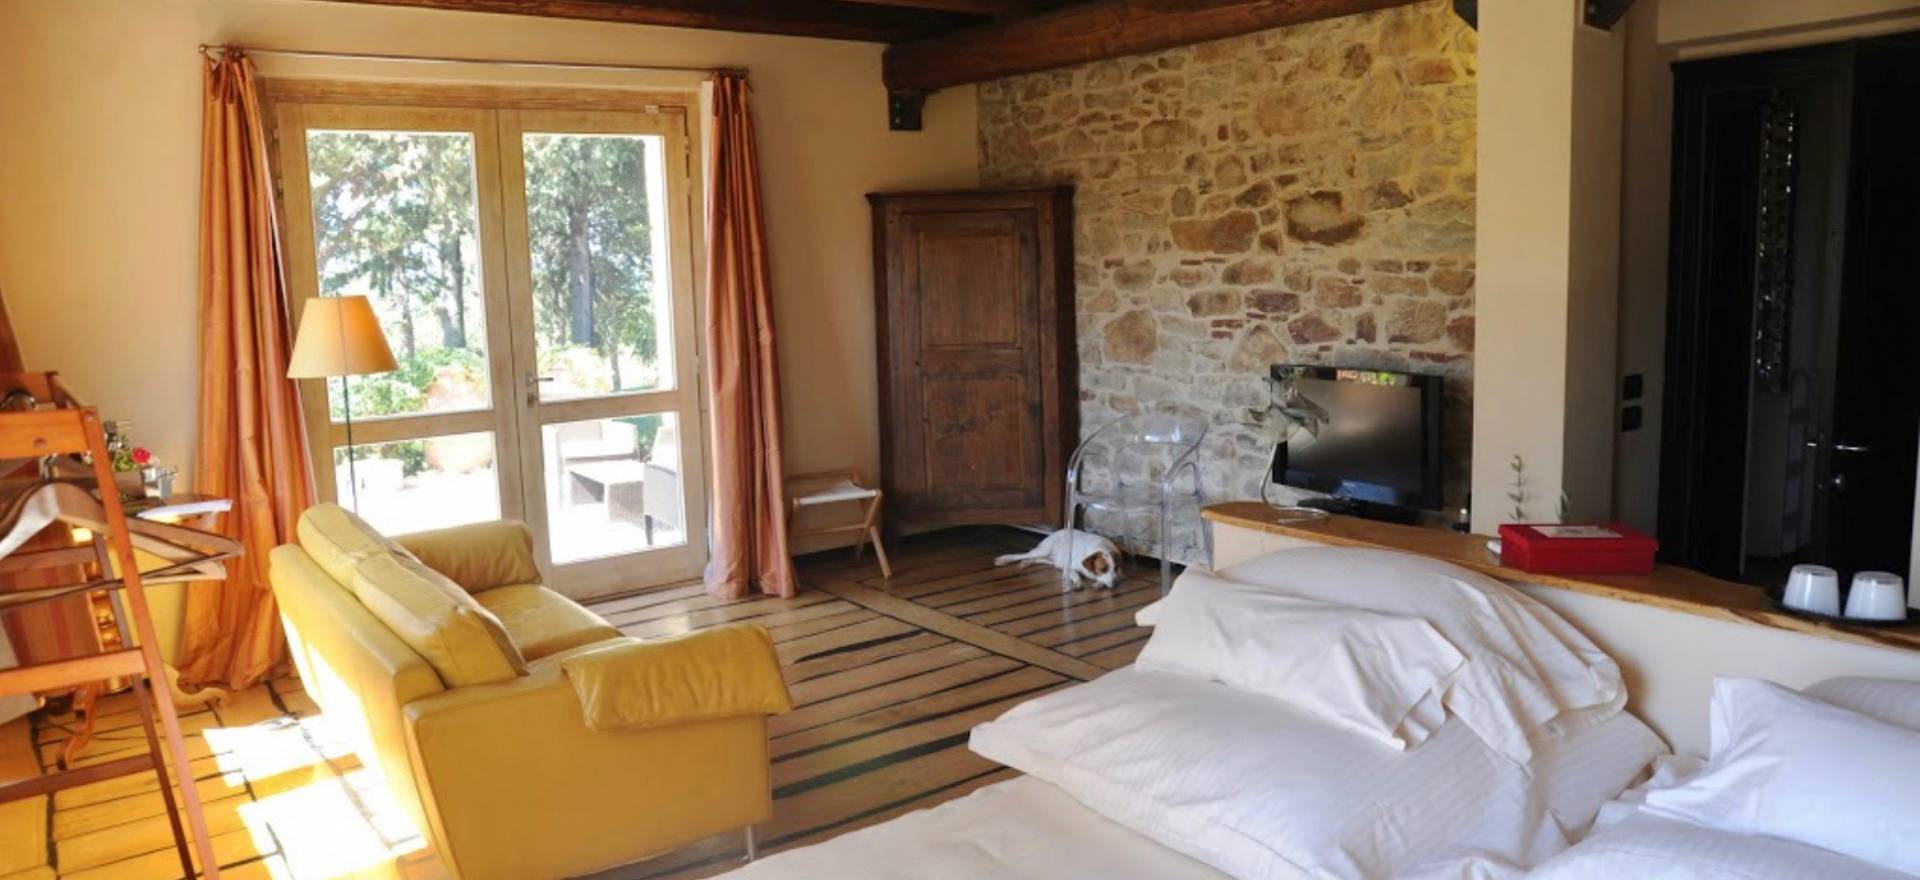 Agriturismo Toscana Splendida country house in Toscana con vista mare